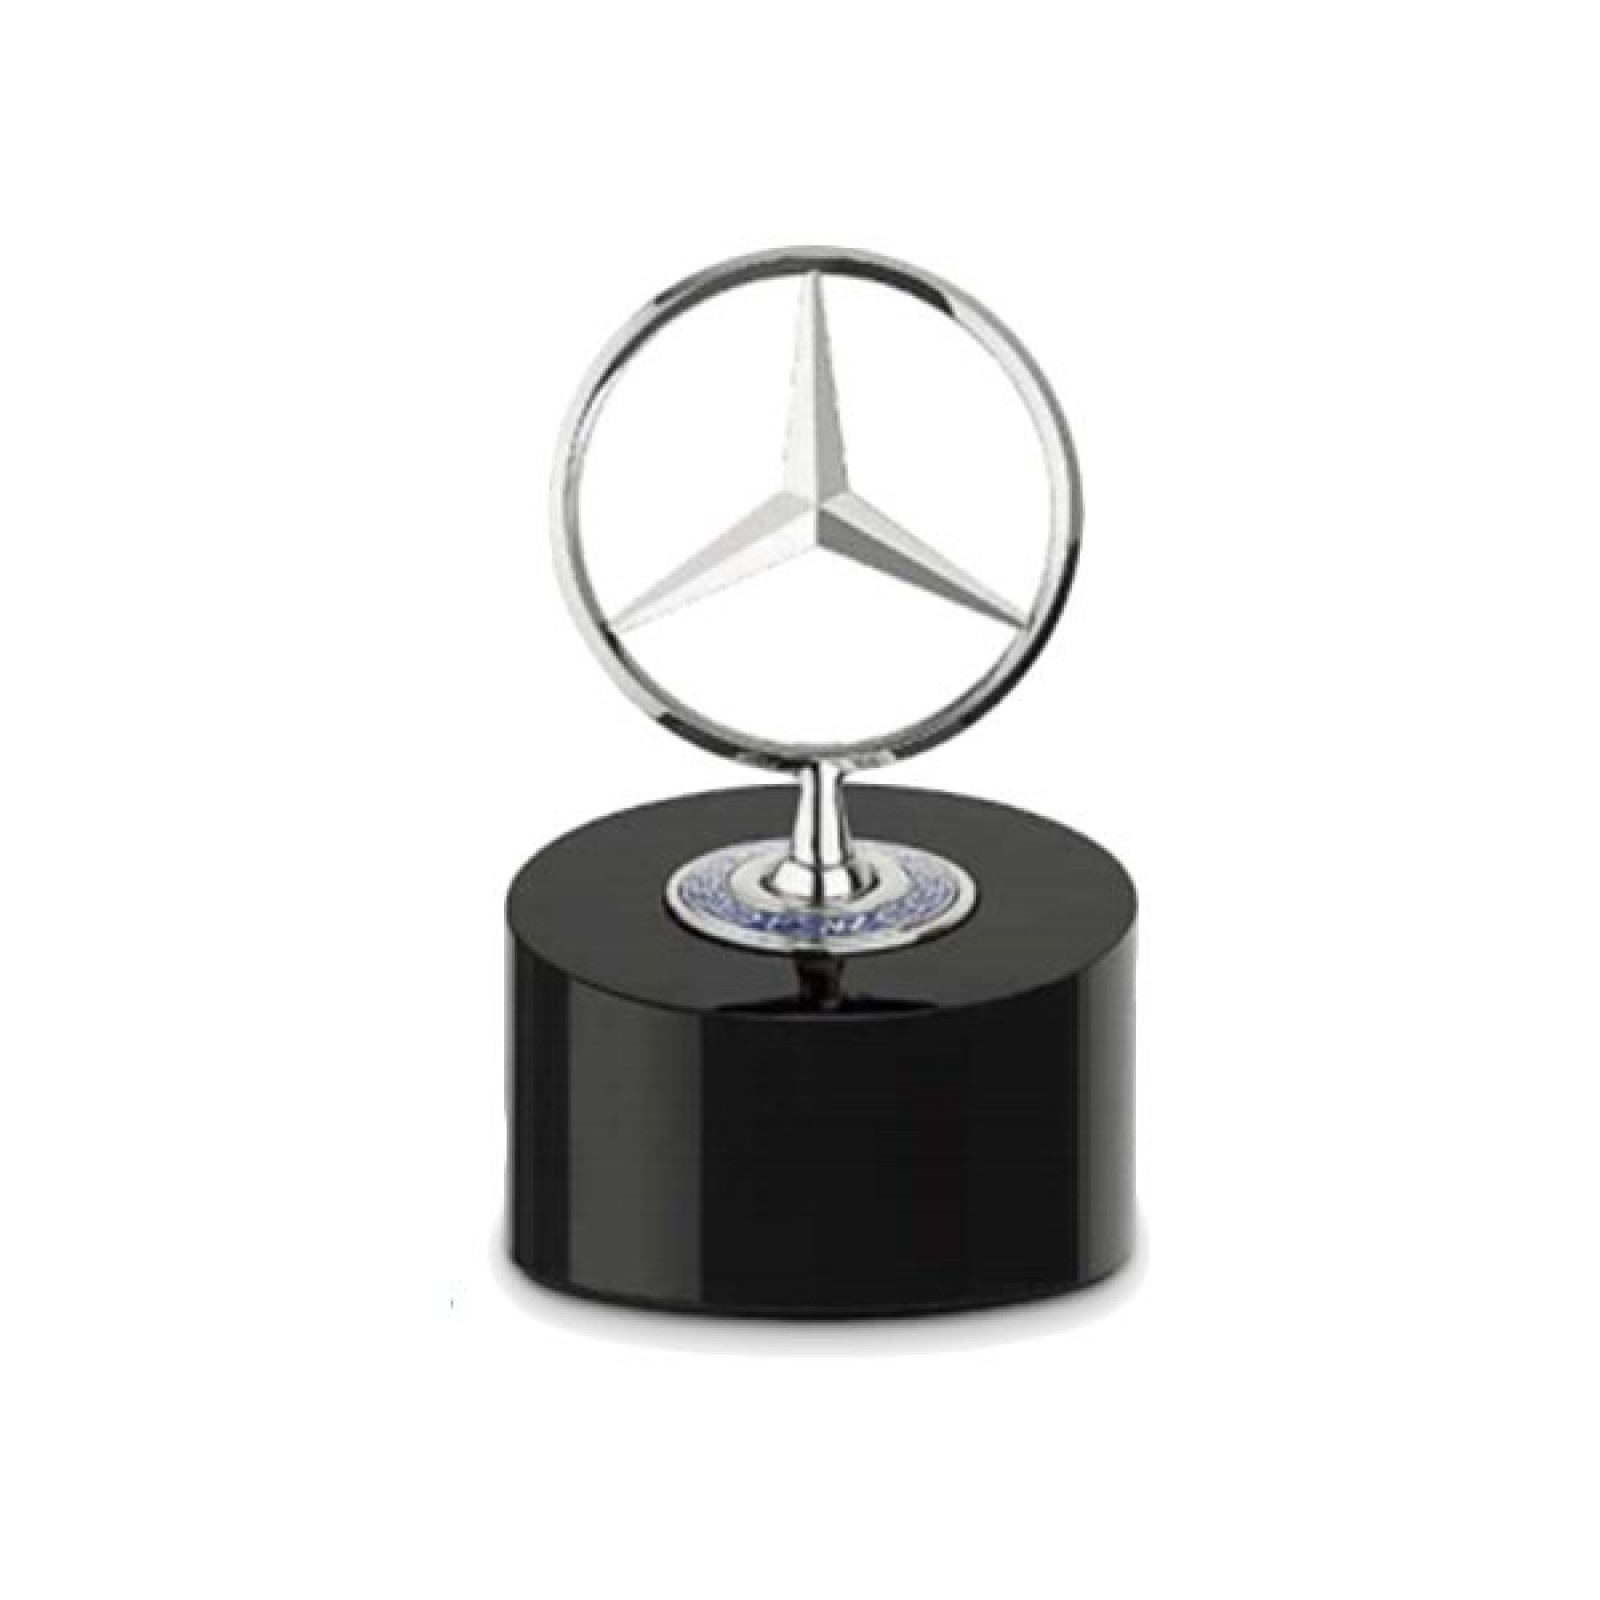 Mercedes Benz Official Bonnet Star Desk Paperweight The